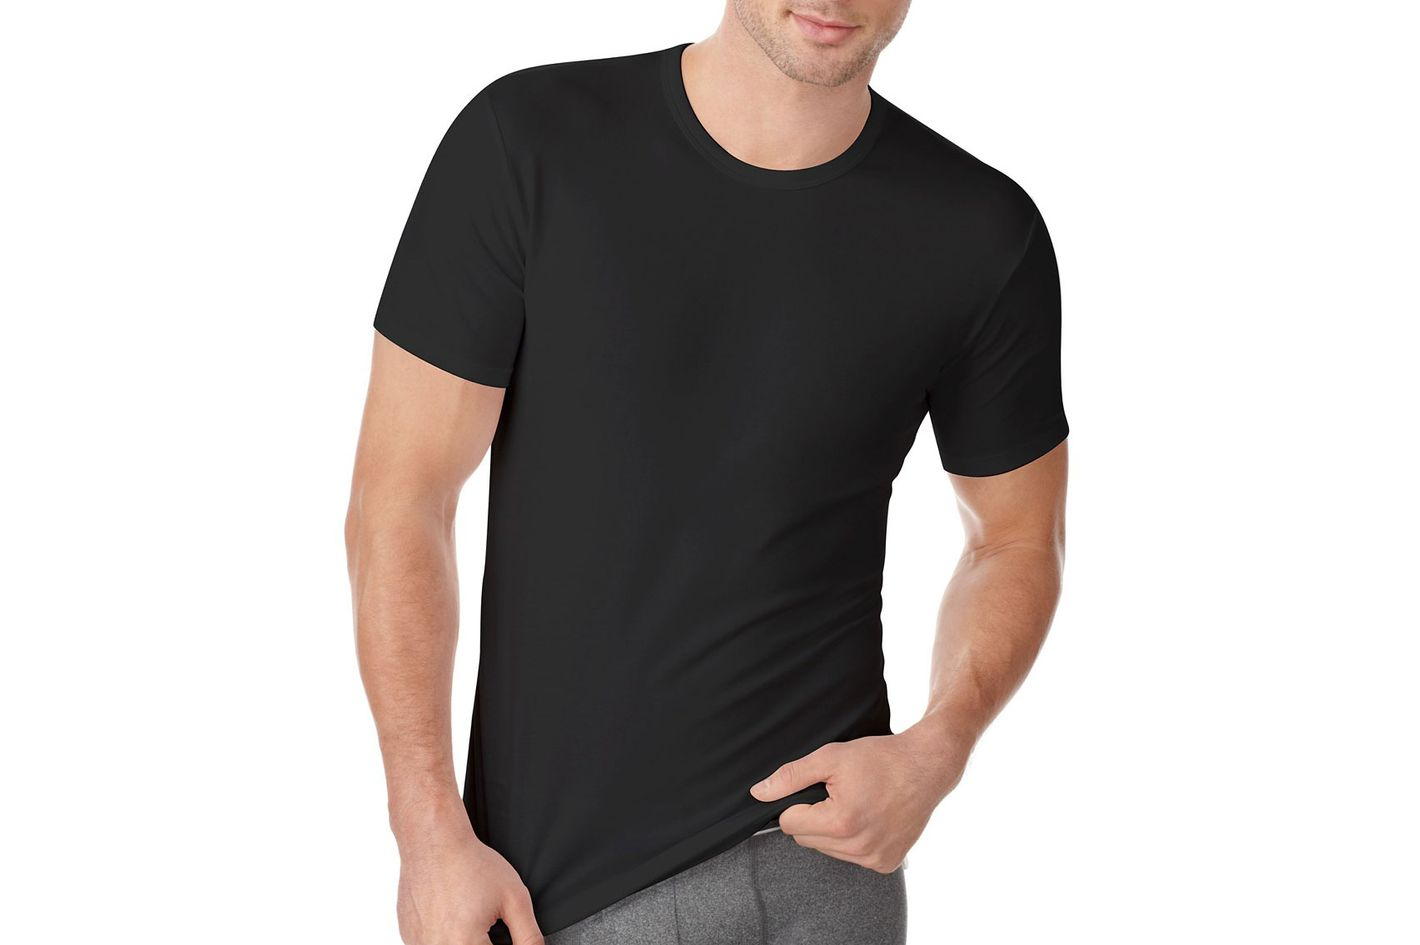 ffd9db66a Best stretchy black T-shirt. Calvin Klein Men s Cotton Stretch Crew-neck  Undershirt 2-Pack